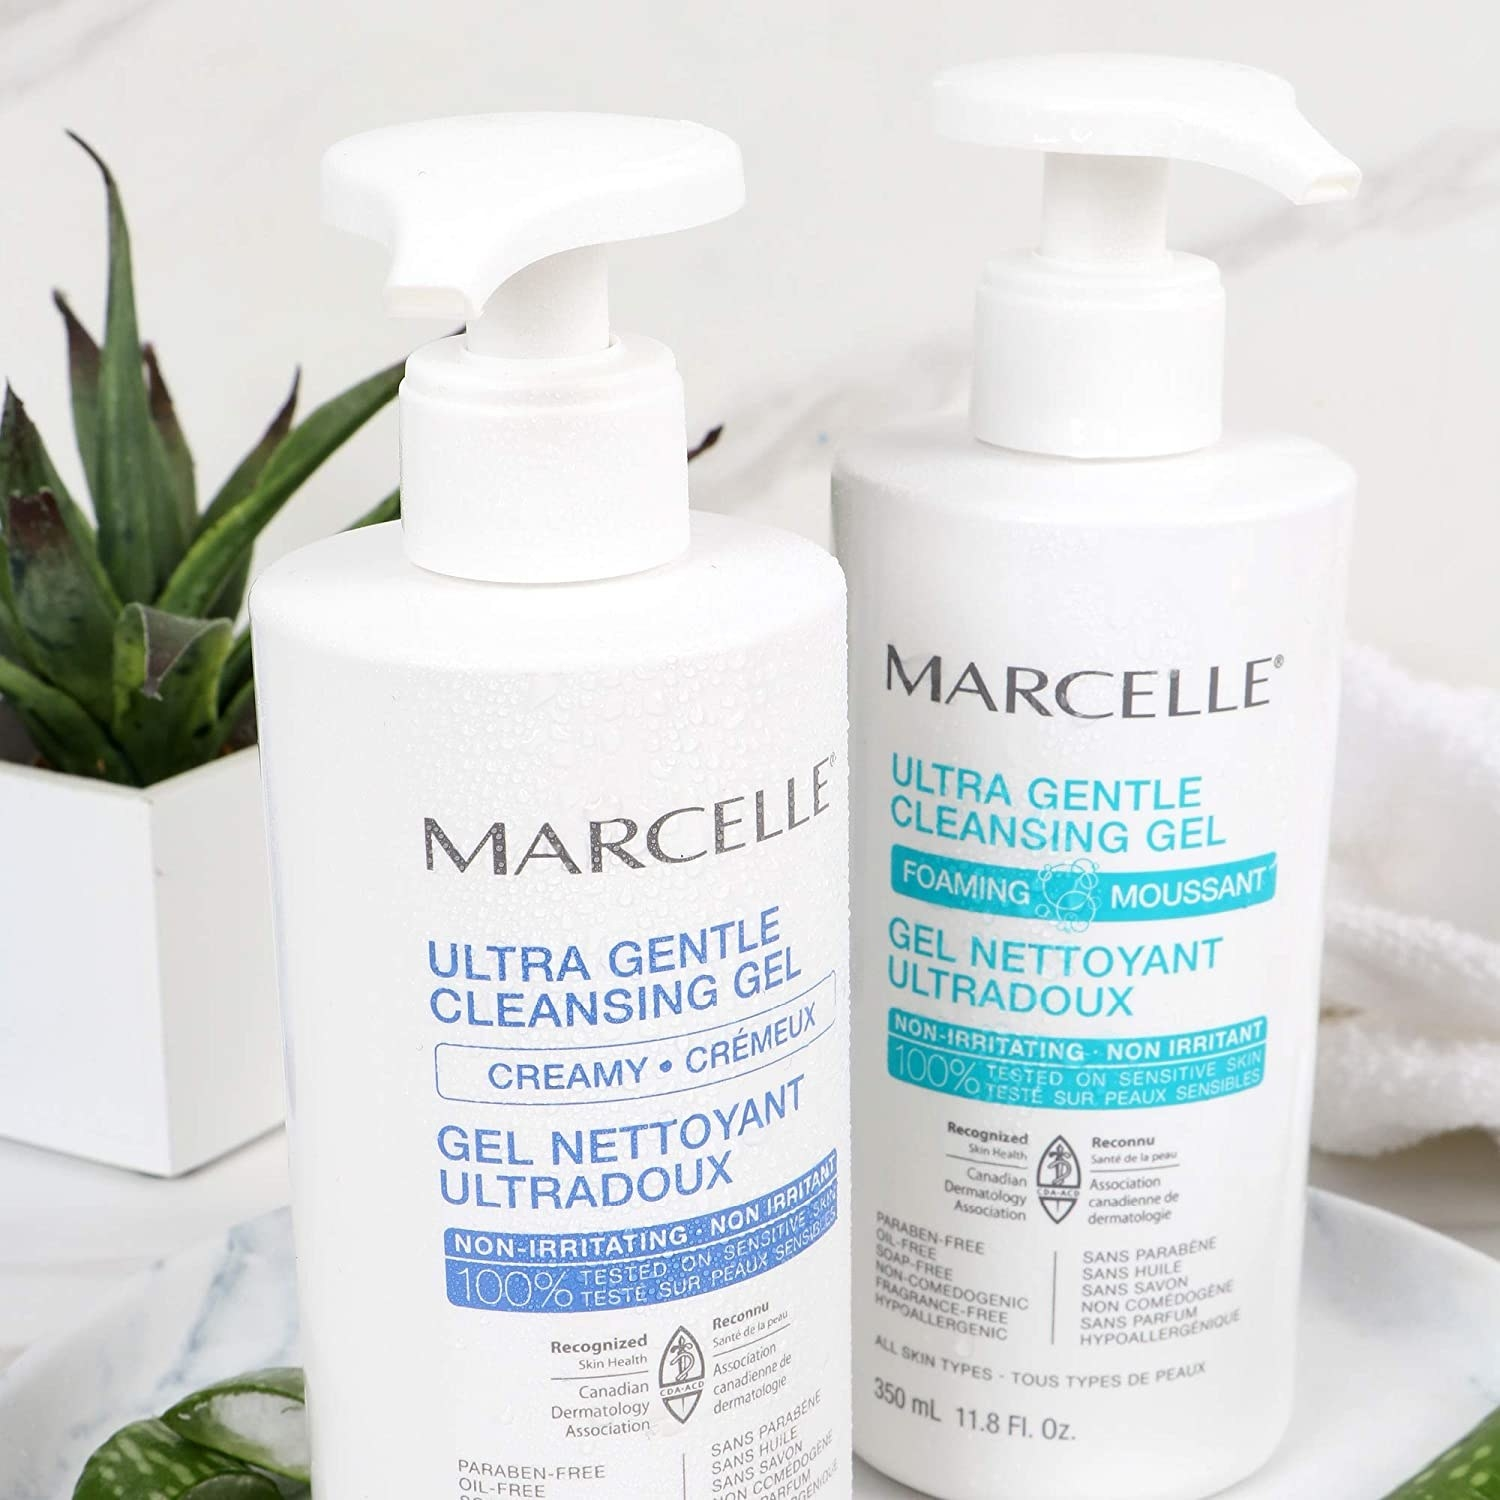 two bottles of the Marcelle cleansing gel